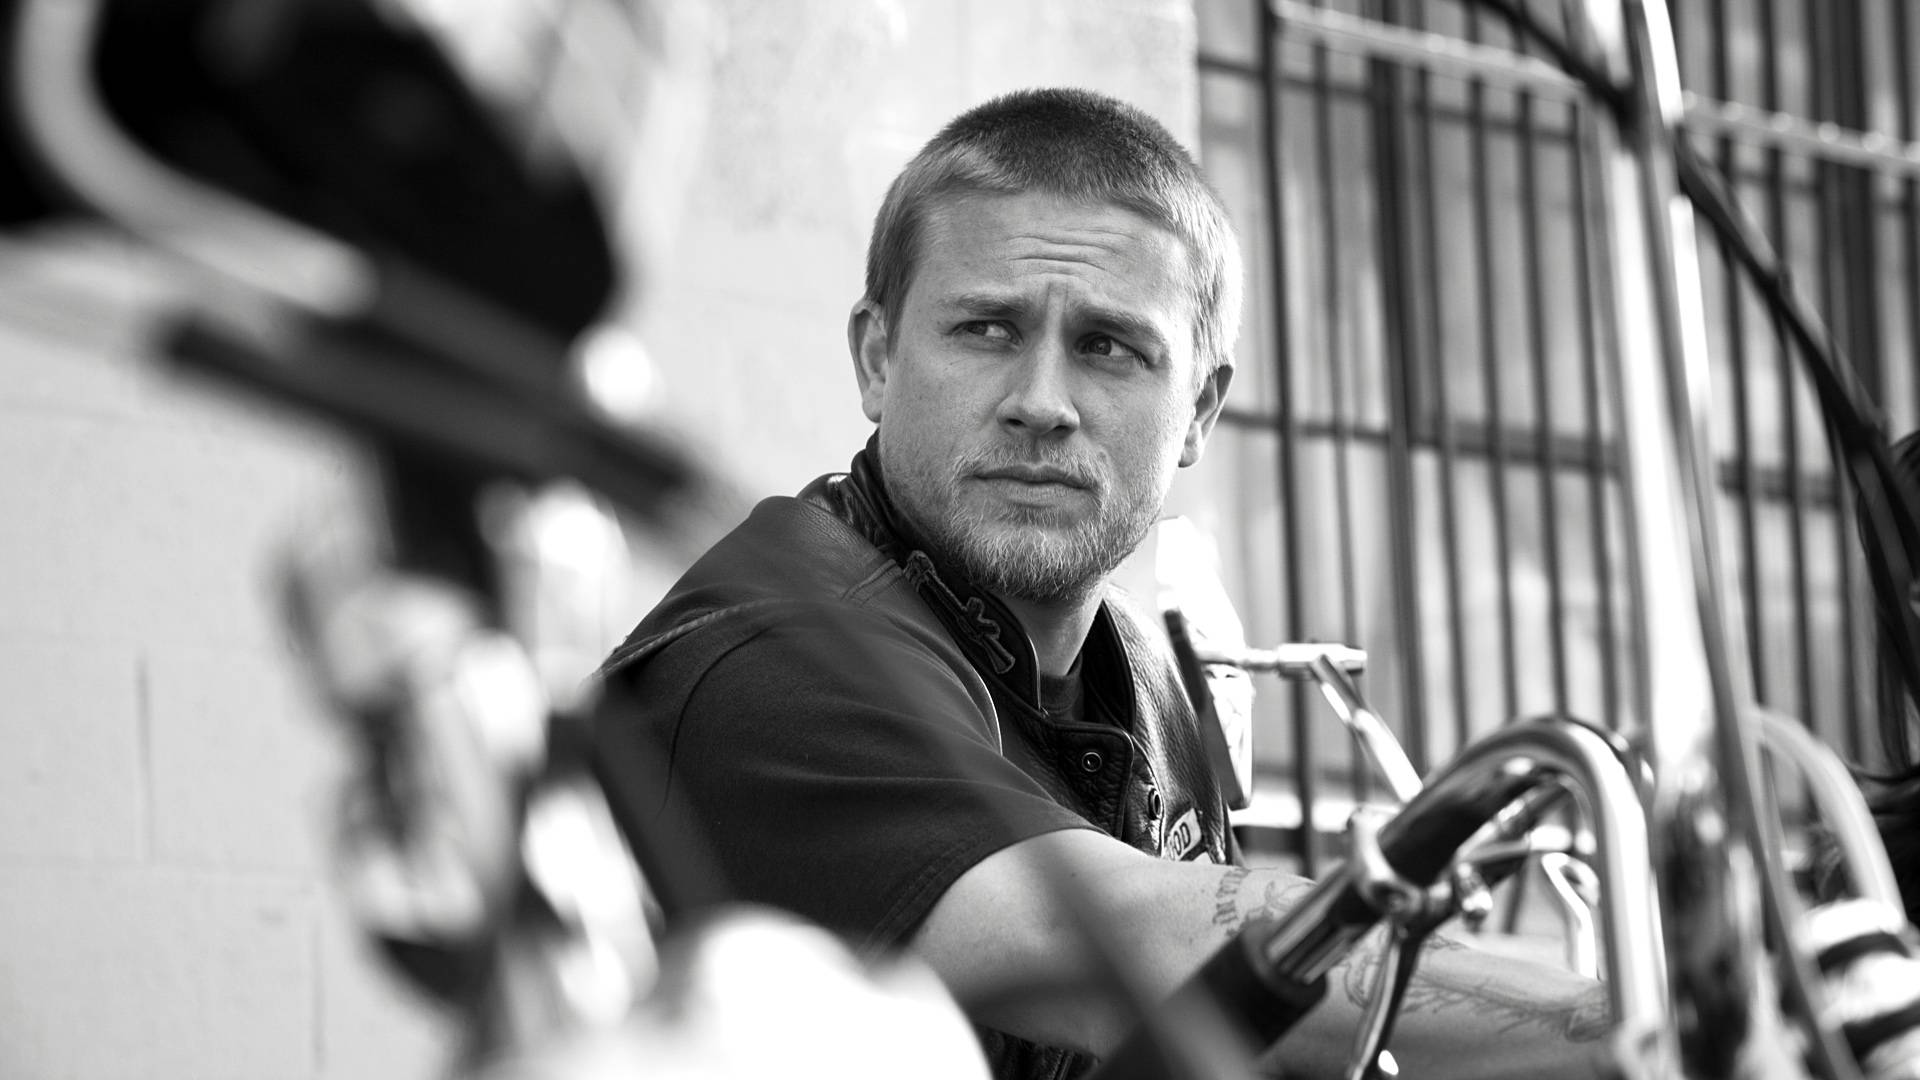 Charlie Hunnam Wallpapers High Resolution And Quality Download